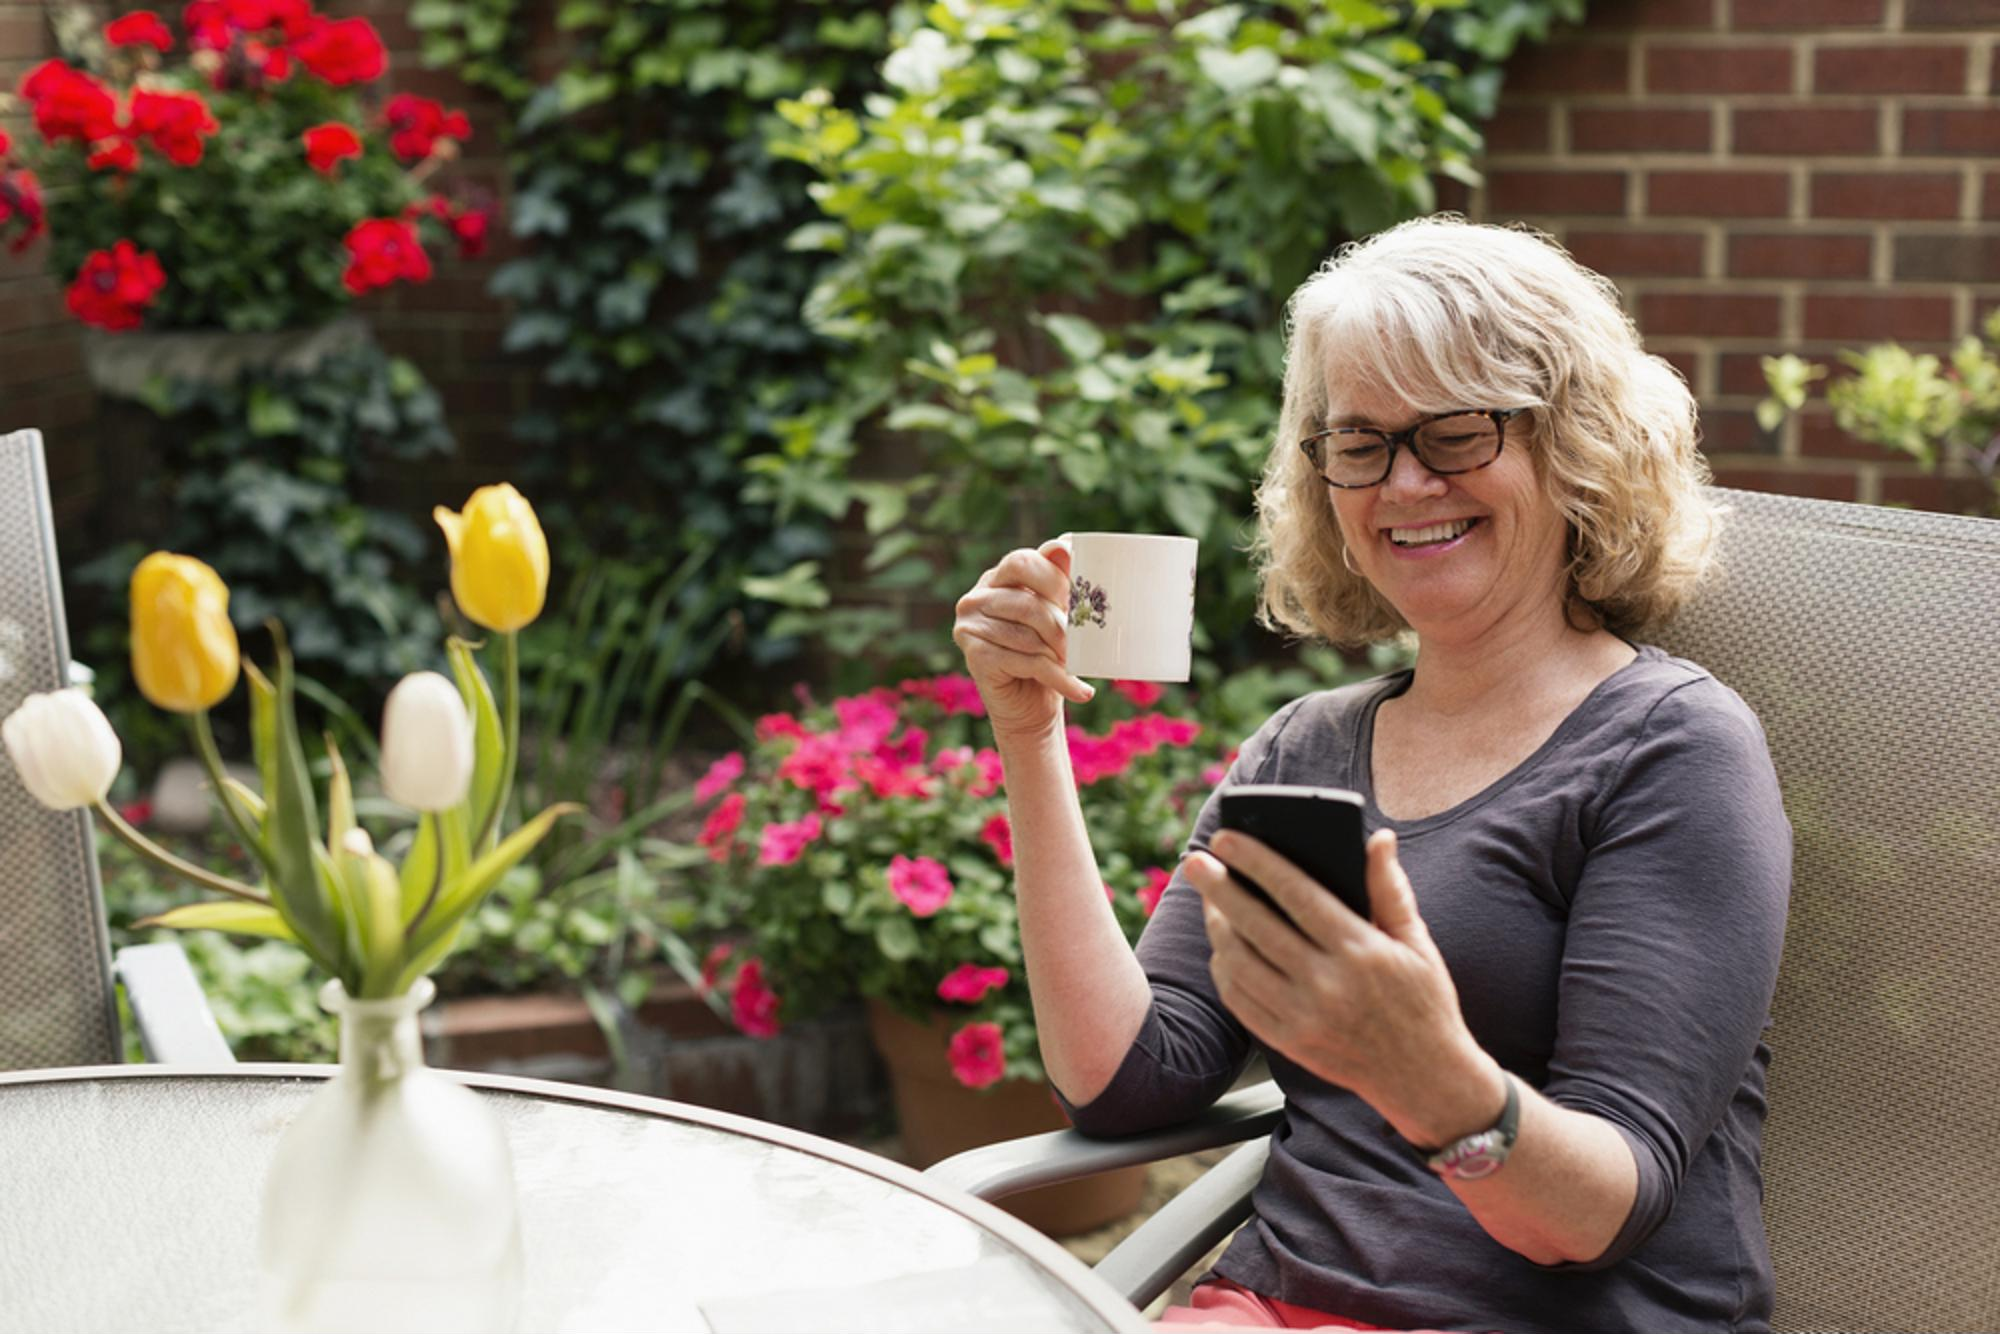 A lady drinking coffee and using her phone